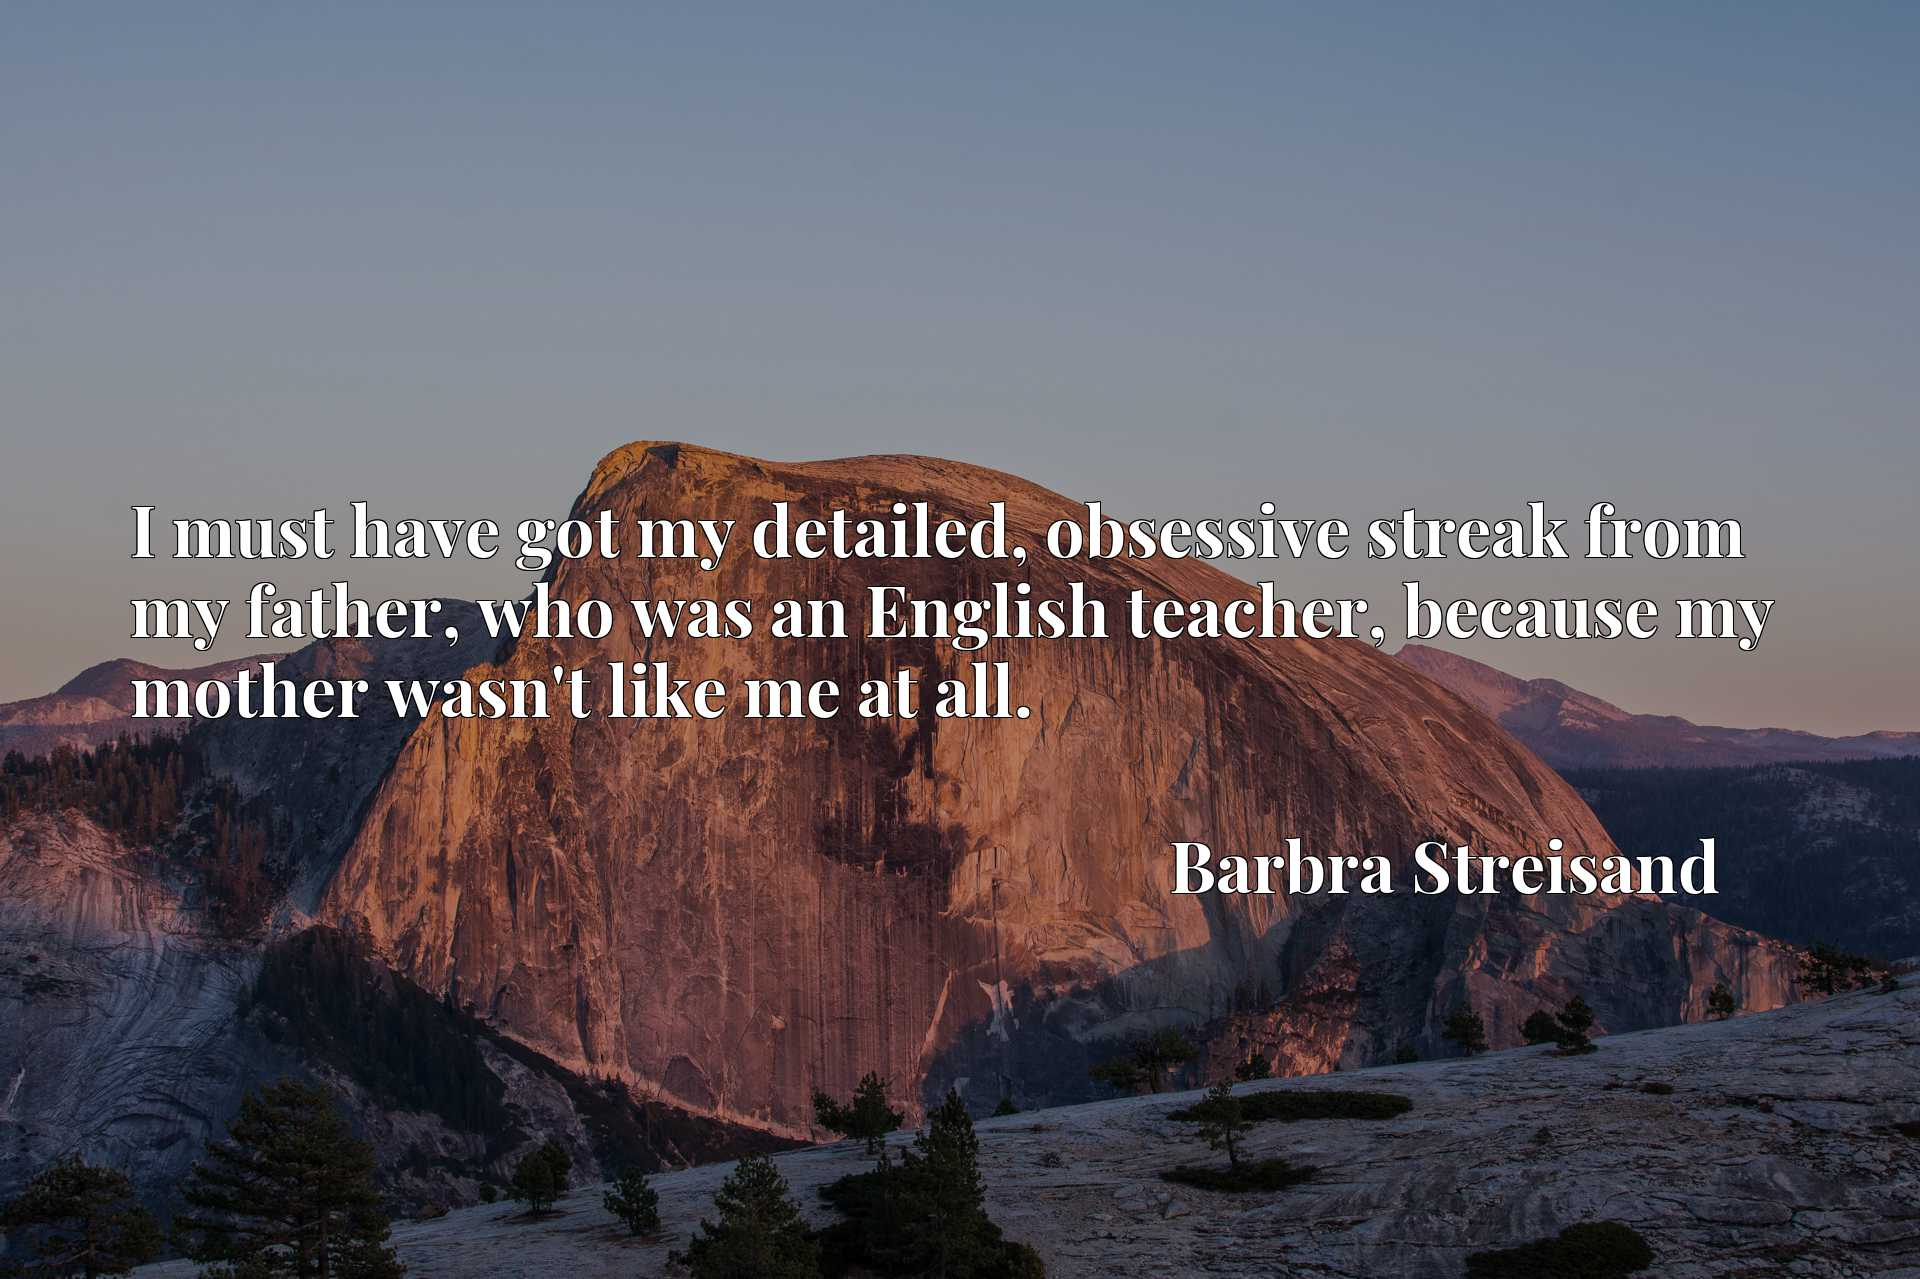 Quote Picture :I must have got my detailed, obsessive streak from my father, who was an English teacher, because my mother wasn't like me at all.